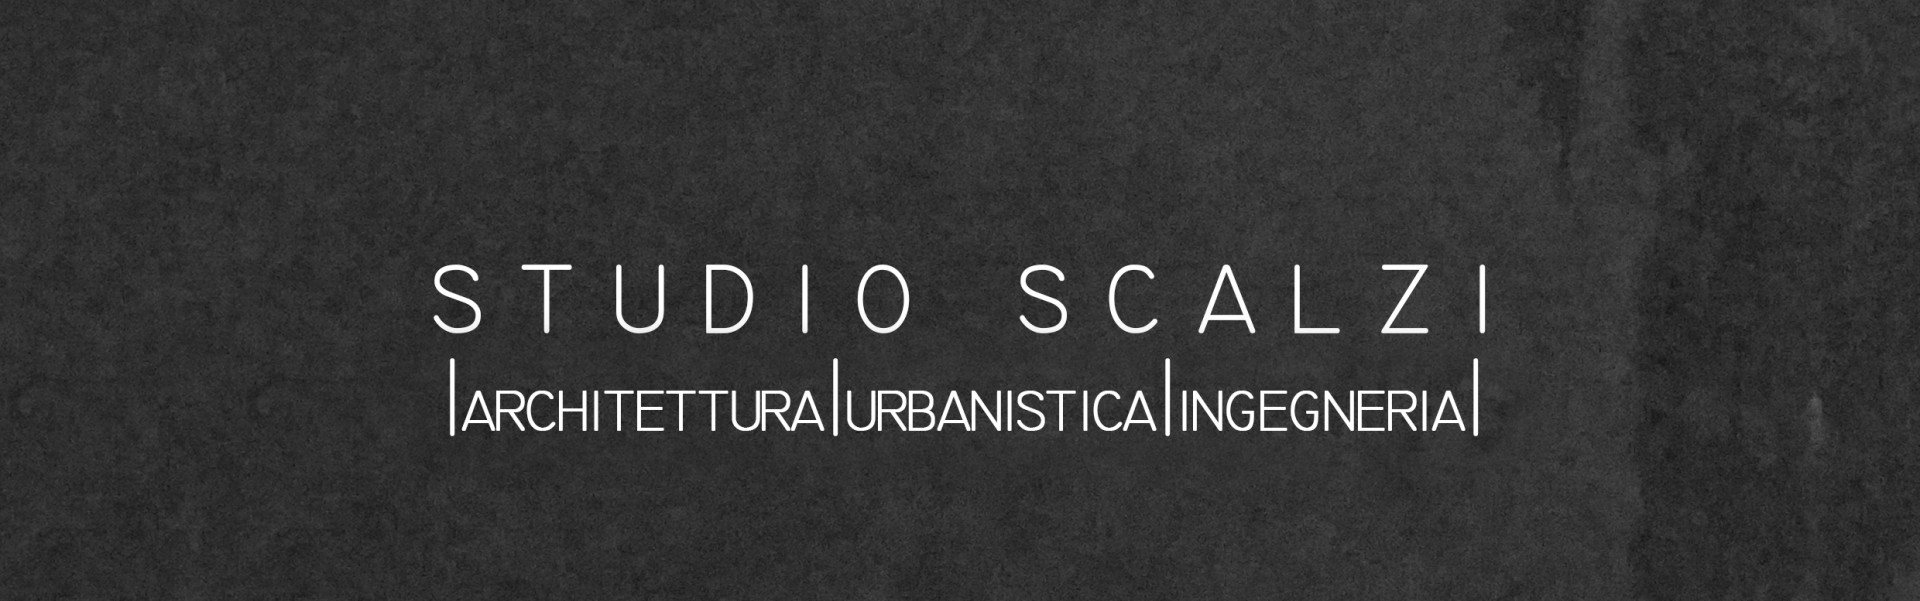 STUDIO SCALZI